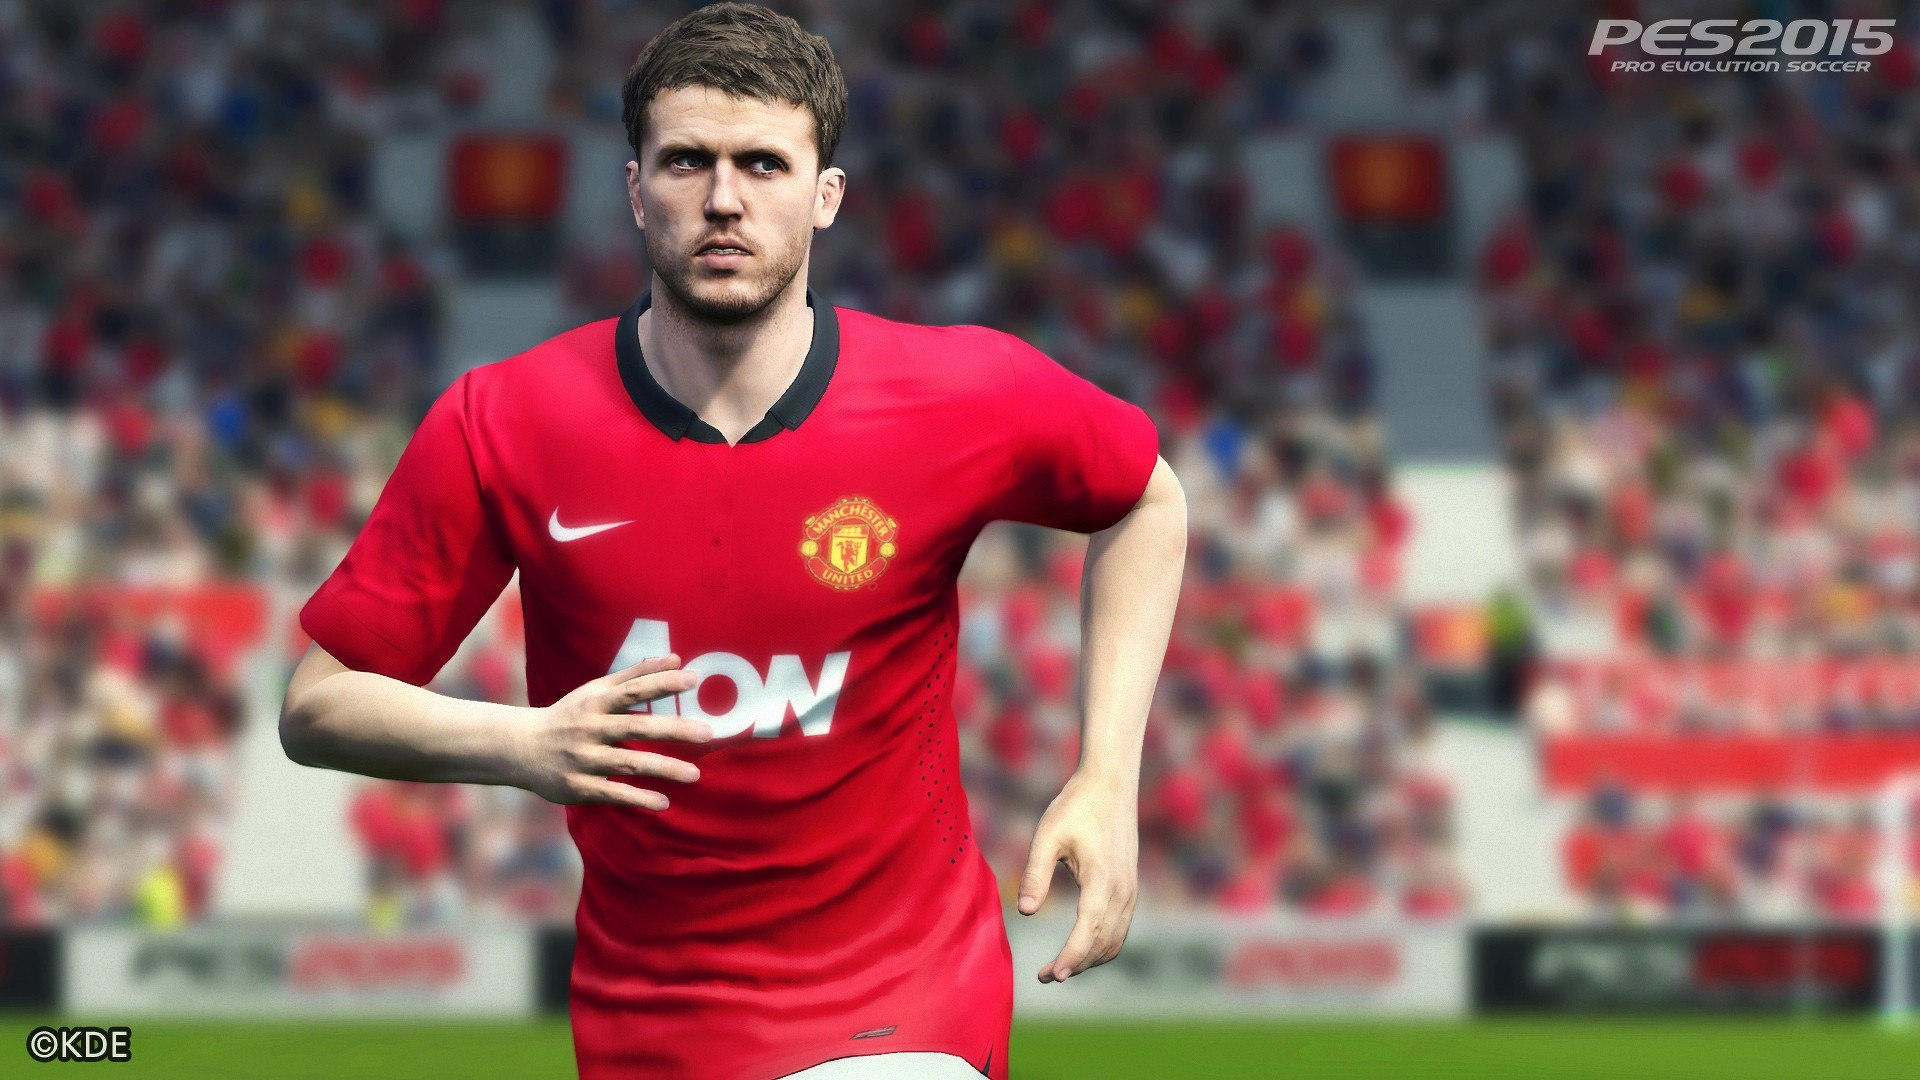 PES 2015-Mais inteligente!